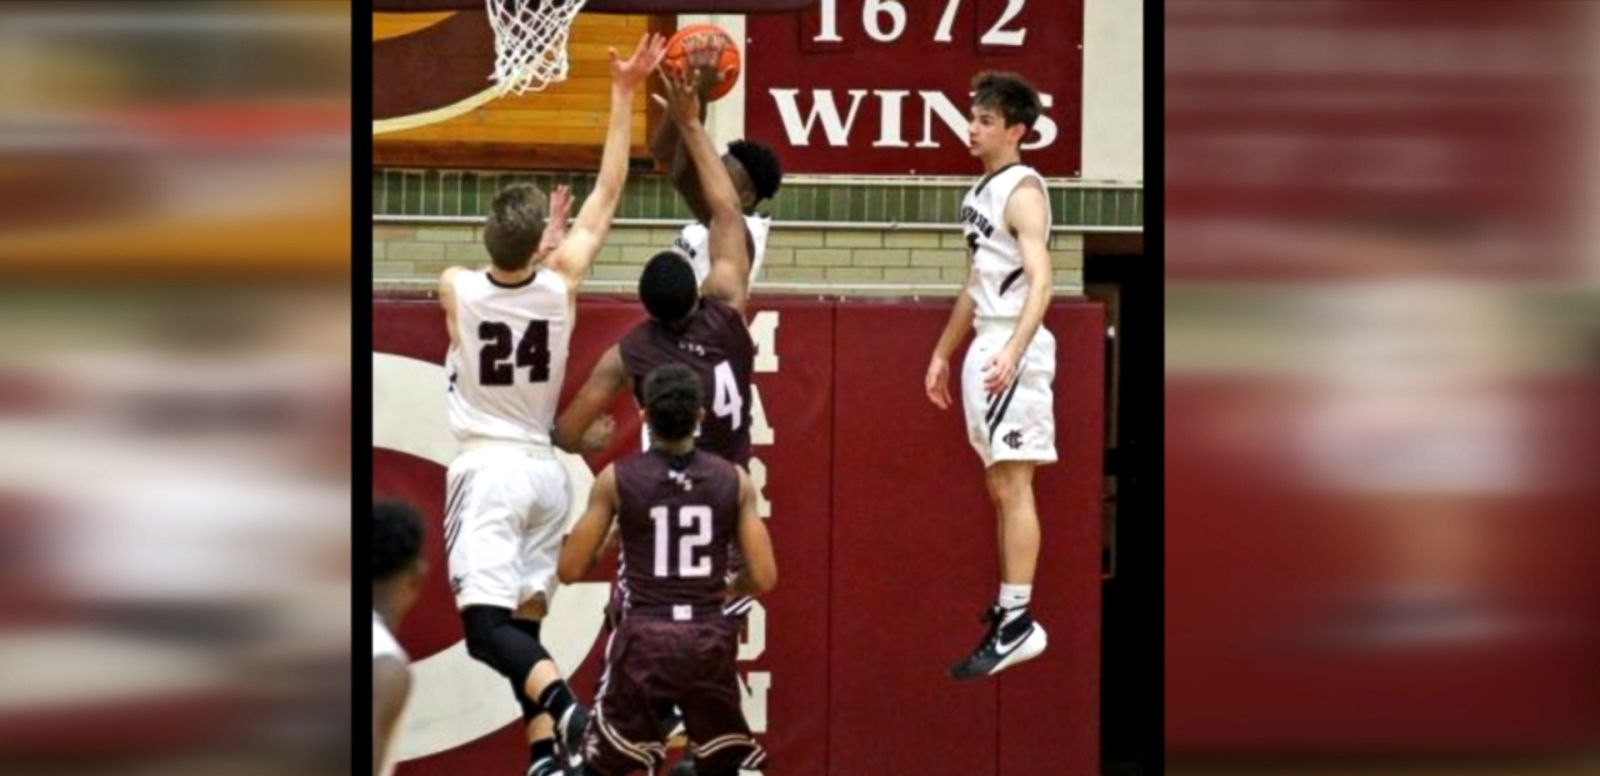 VIDEO: A photo of Champaign Central High School junior Walker Stillman in mid-air a during basketball game is going viral.